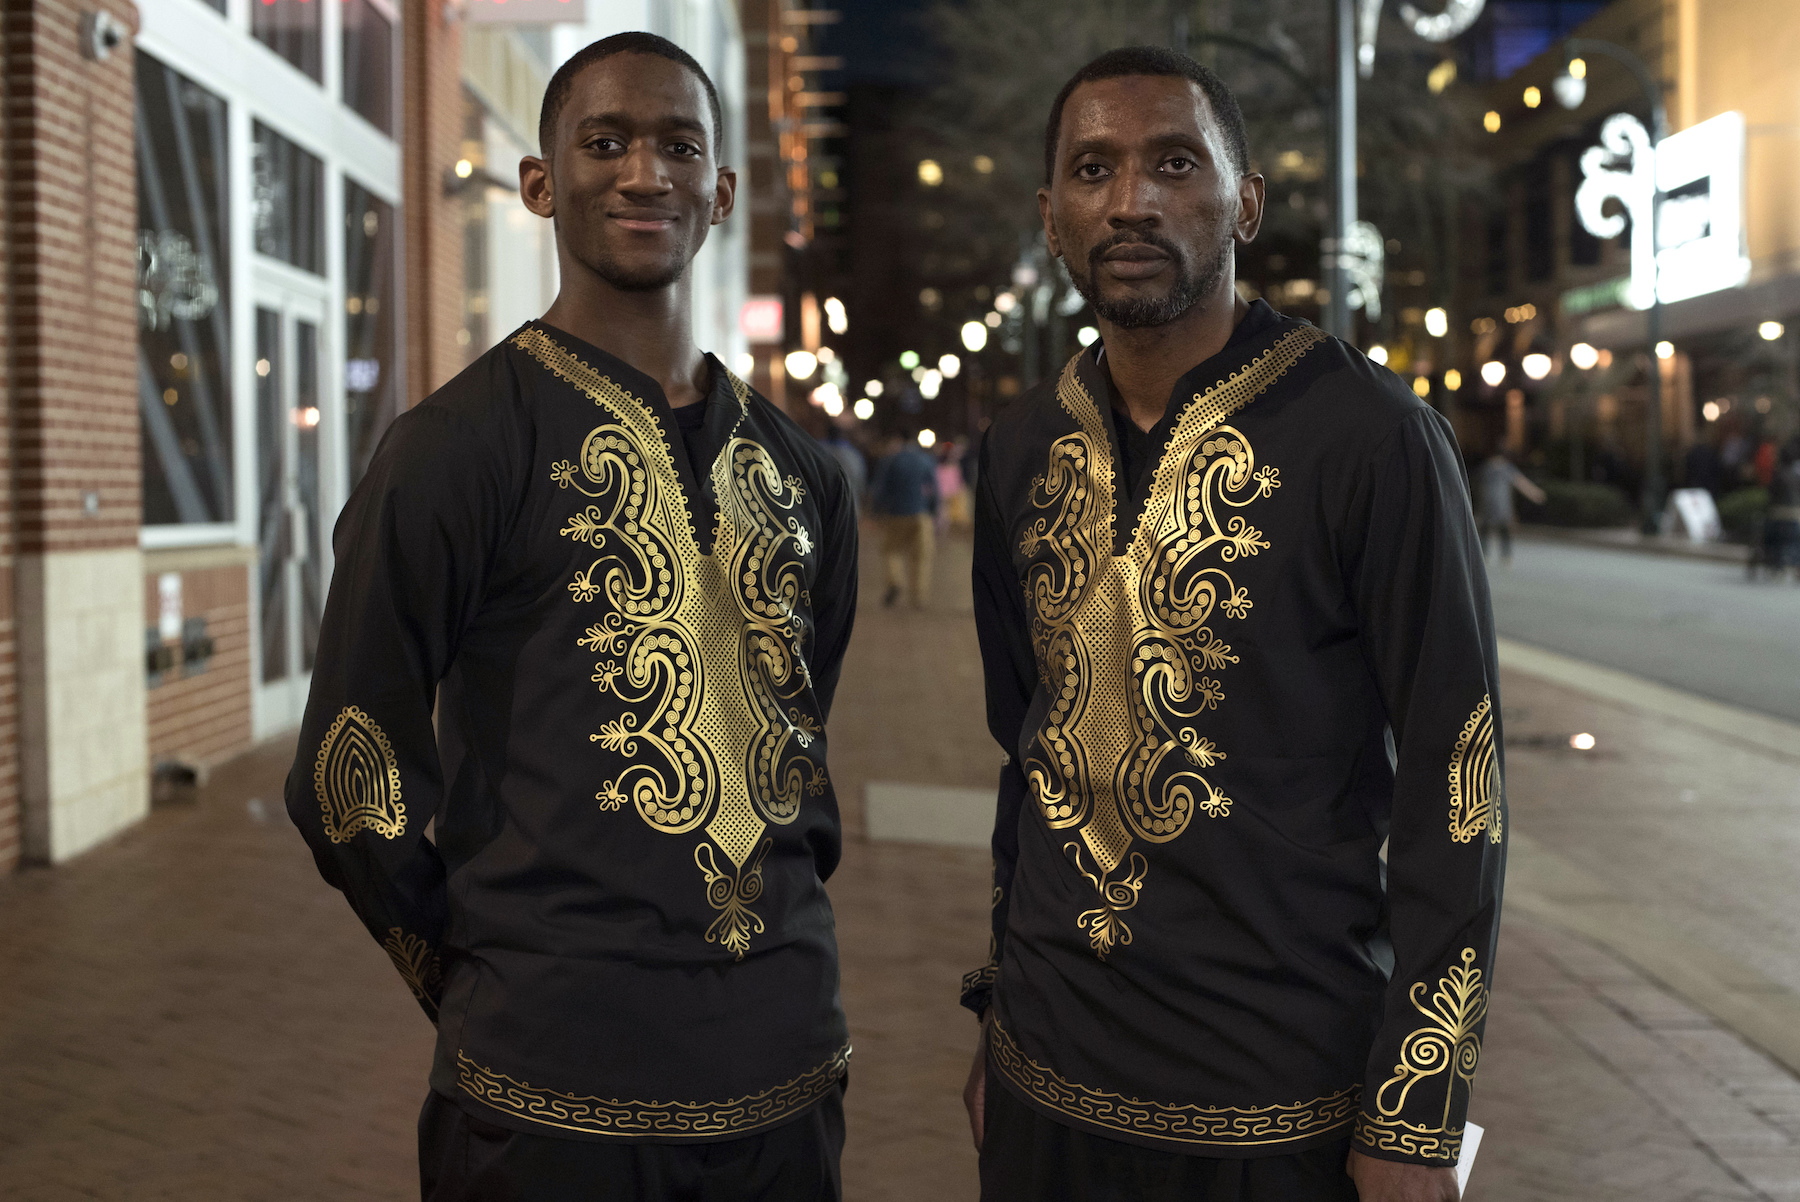 "<div class=""meta image-caption""><div class=""origin-logo origin-image ap""><span>AP</span></div><span class=""caption-text"">Khalel Robinson, left, poses with his father Jossan Robinson before seeing Black Panther in Silver Spring, Md., Thursday, Feb. 15, 2018. (AP Photo/Sait Serkan Gurbuz)</span></div>"